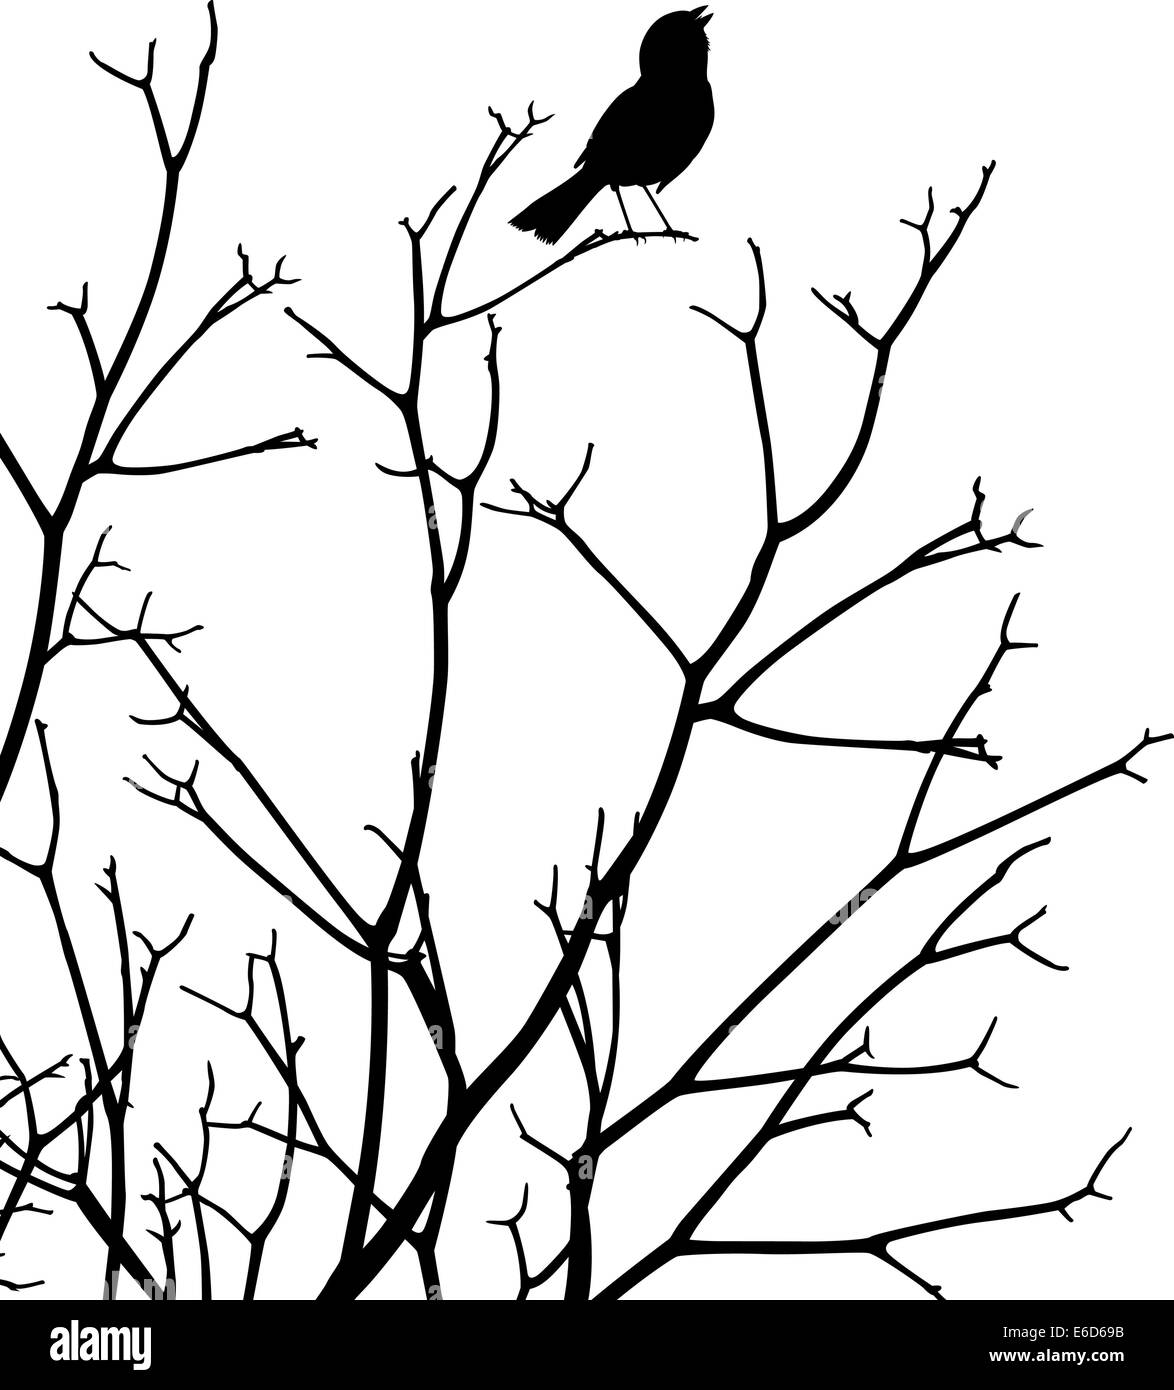 Editable vector silhouette of a bird singing at the top of a bare tree - Stock Image